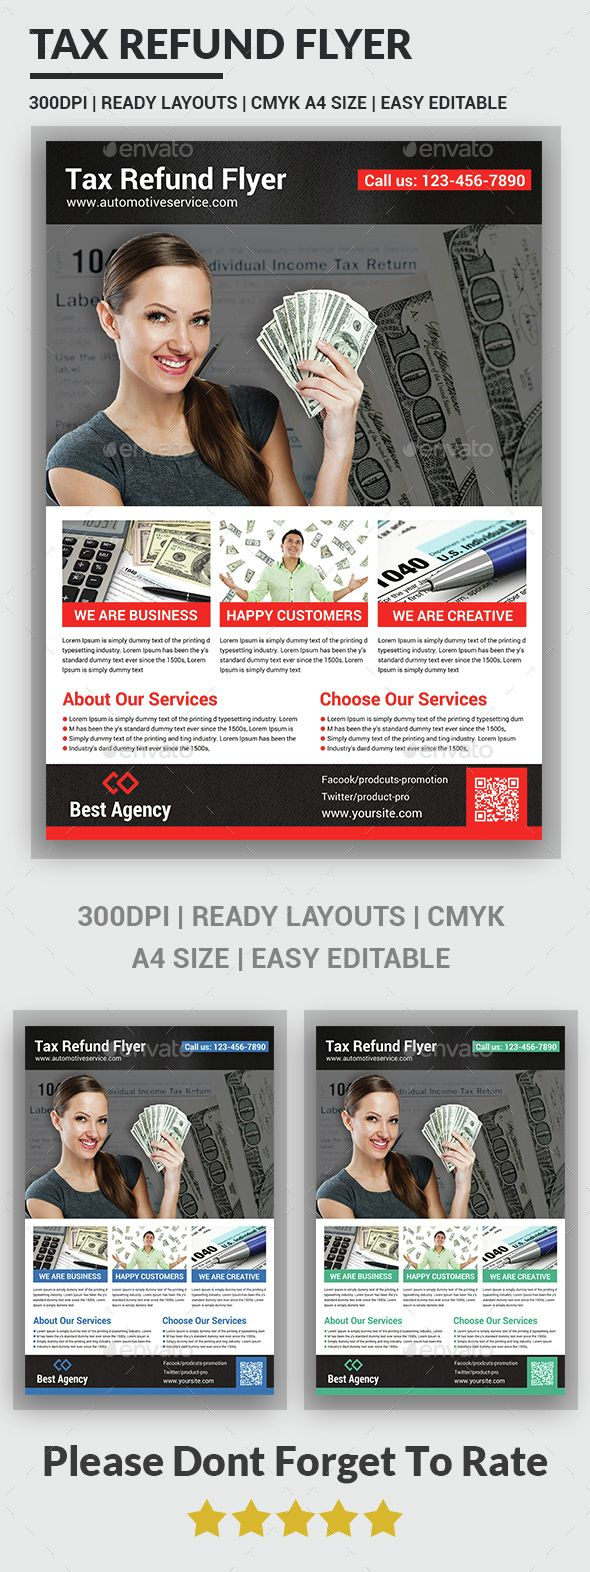 Tax Refund Flyer Template | Flyer template, Template and Font logo